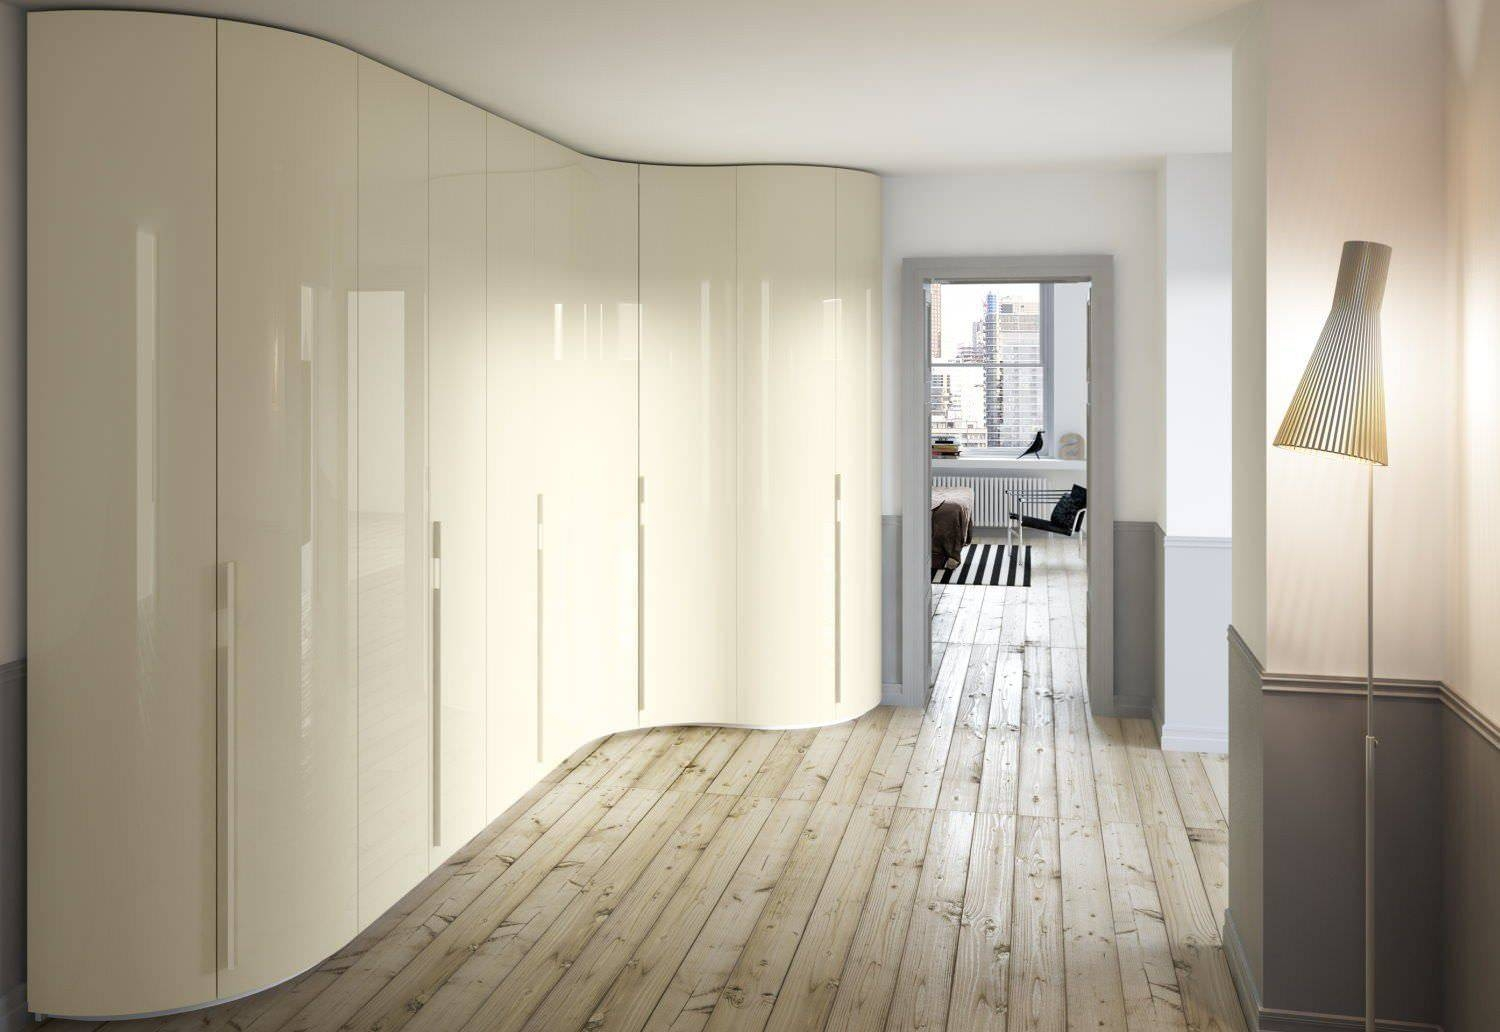 Corner Wardrobe / Contemporary / Wooden / Glossy Lacquered Wood For Curved Corner Wardrobe Doors (View 10 of 30)